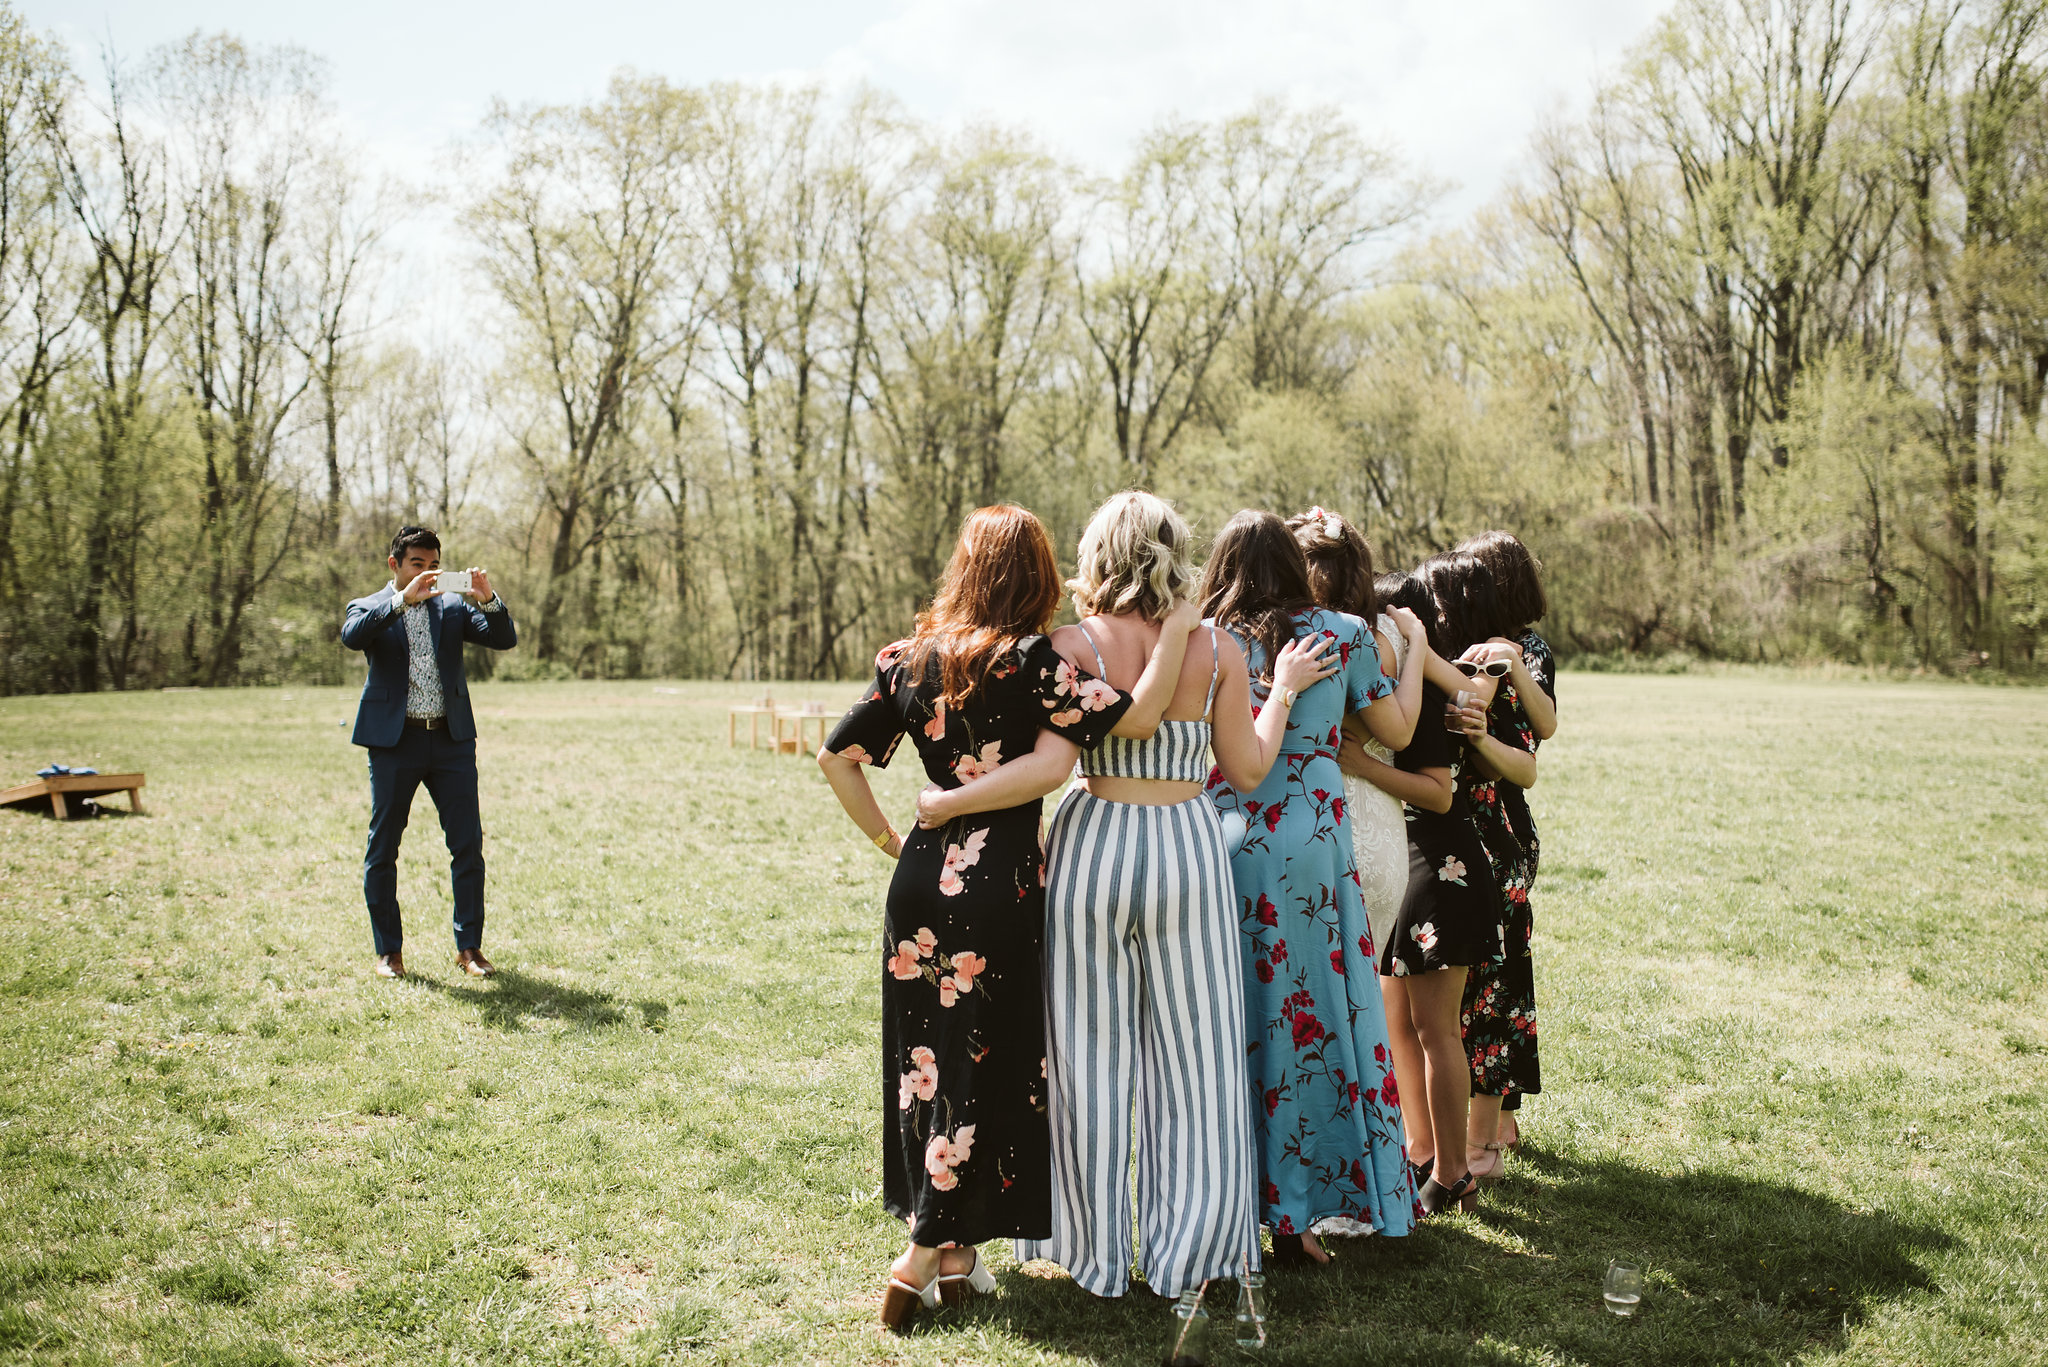 Spring Outdoor Wedding, Park, Baltimore Wedding Photographer, DIY, Classic, Upcycled, Garden Party, Romantic, Friends Gathered for a Photo, Photo of a Photo